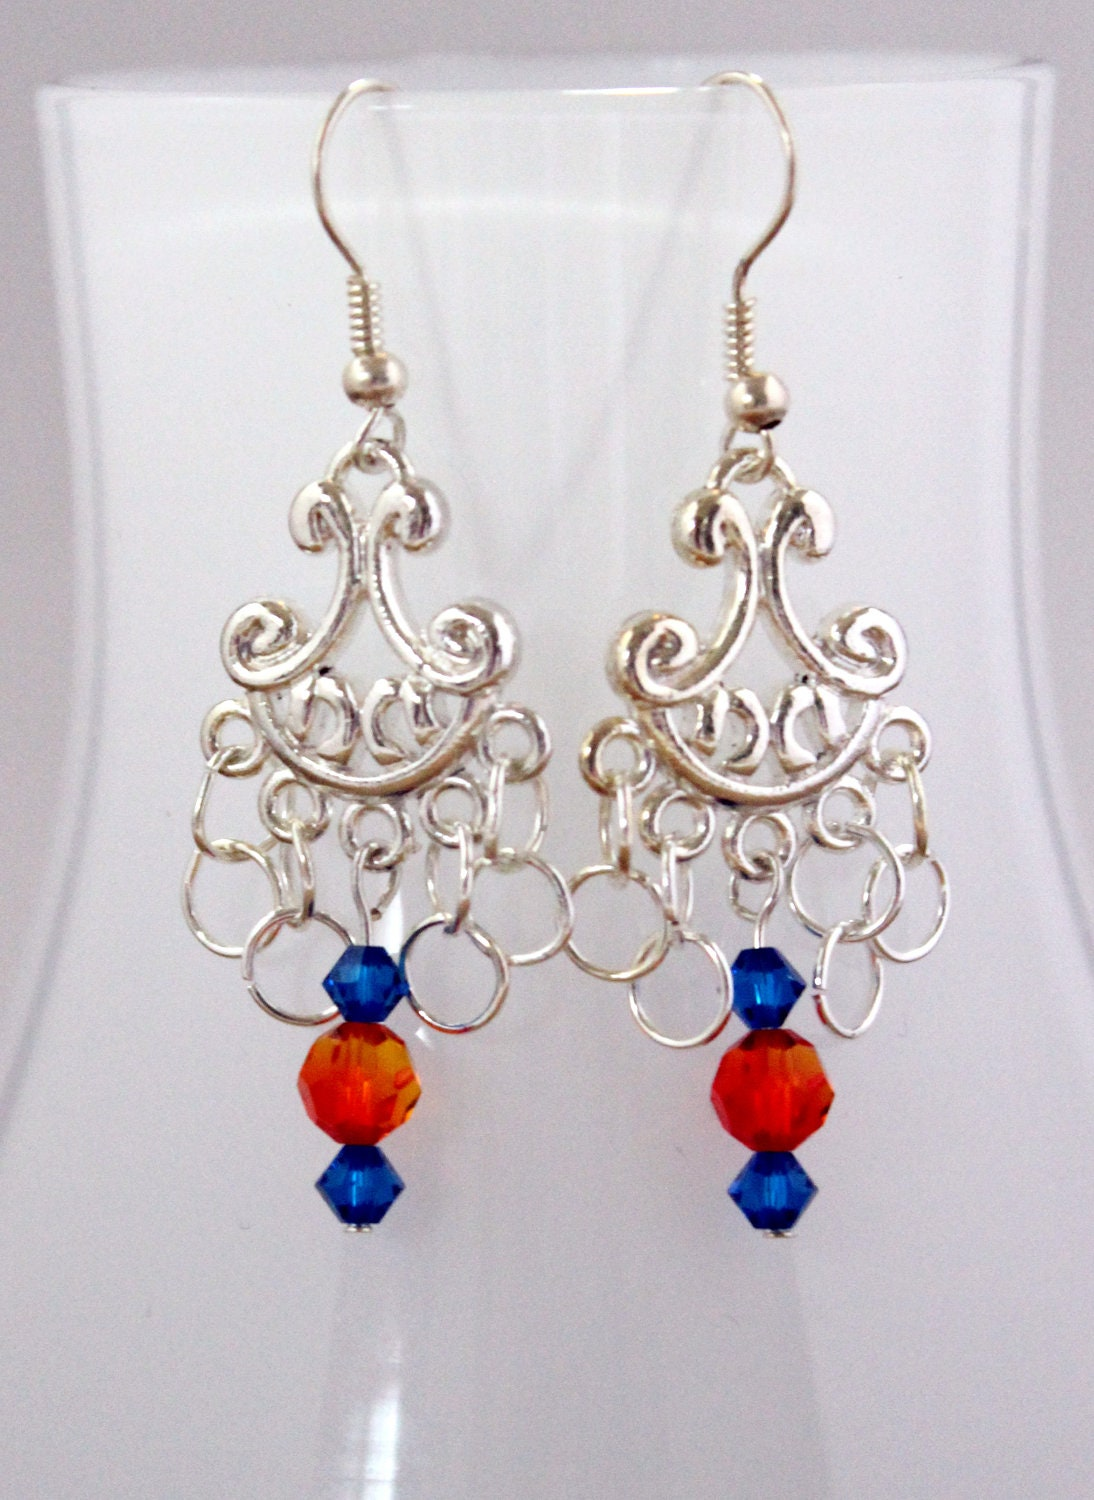 Swaroski Complementary Silver Chandelier Earrings